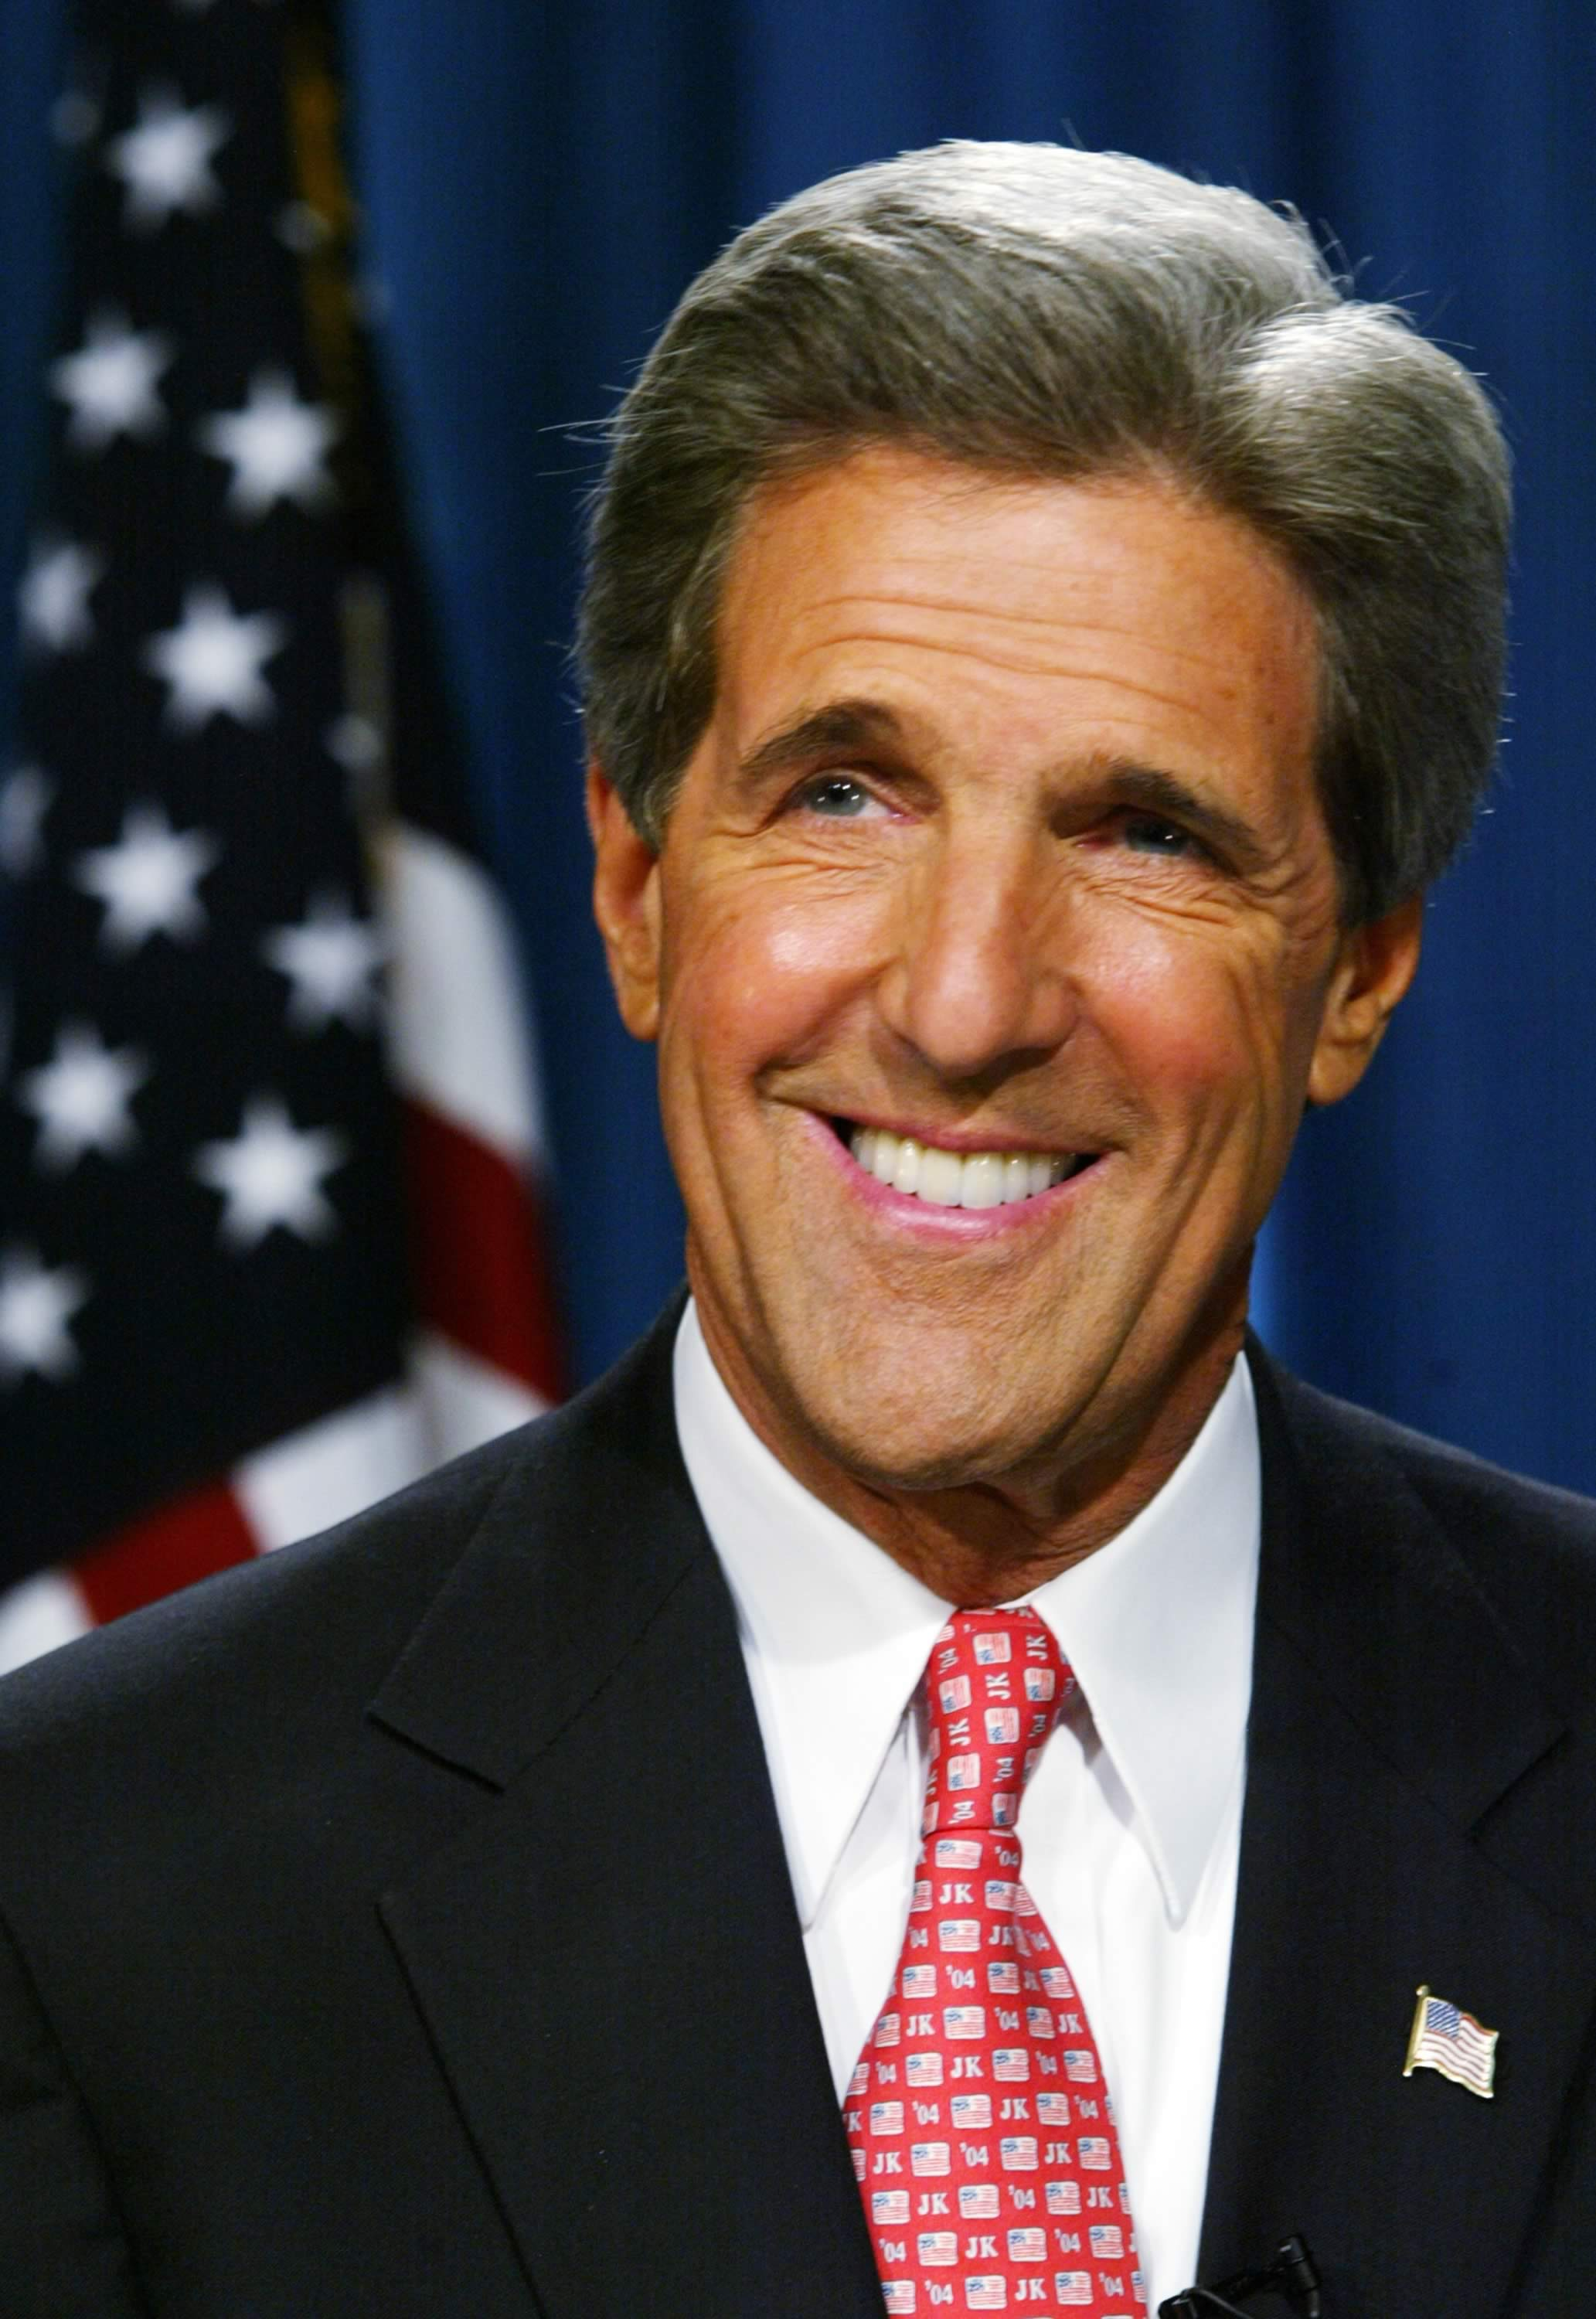 2004 Presidential Election (Kerry 2004)